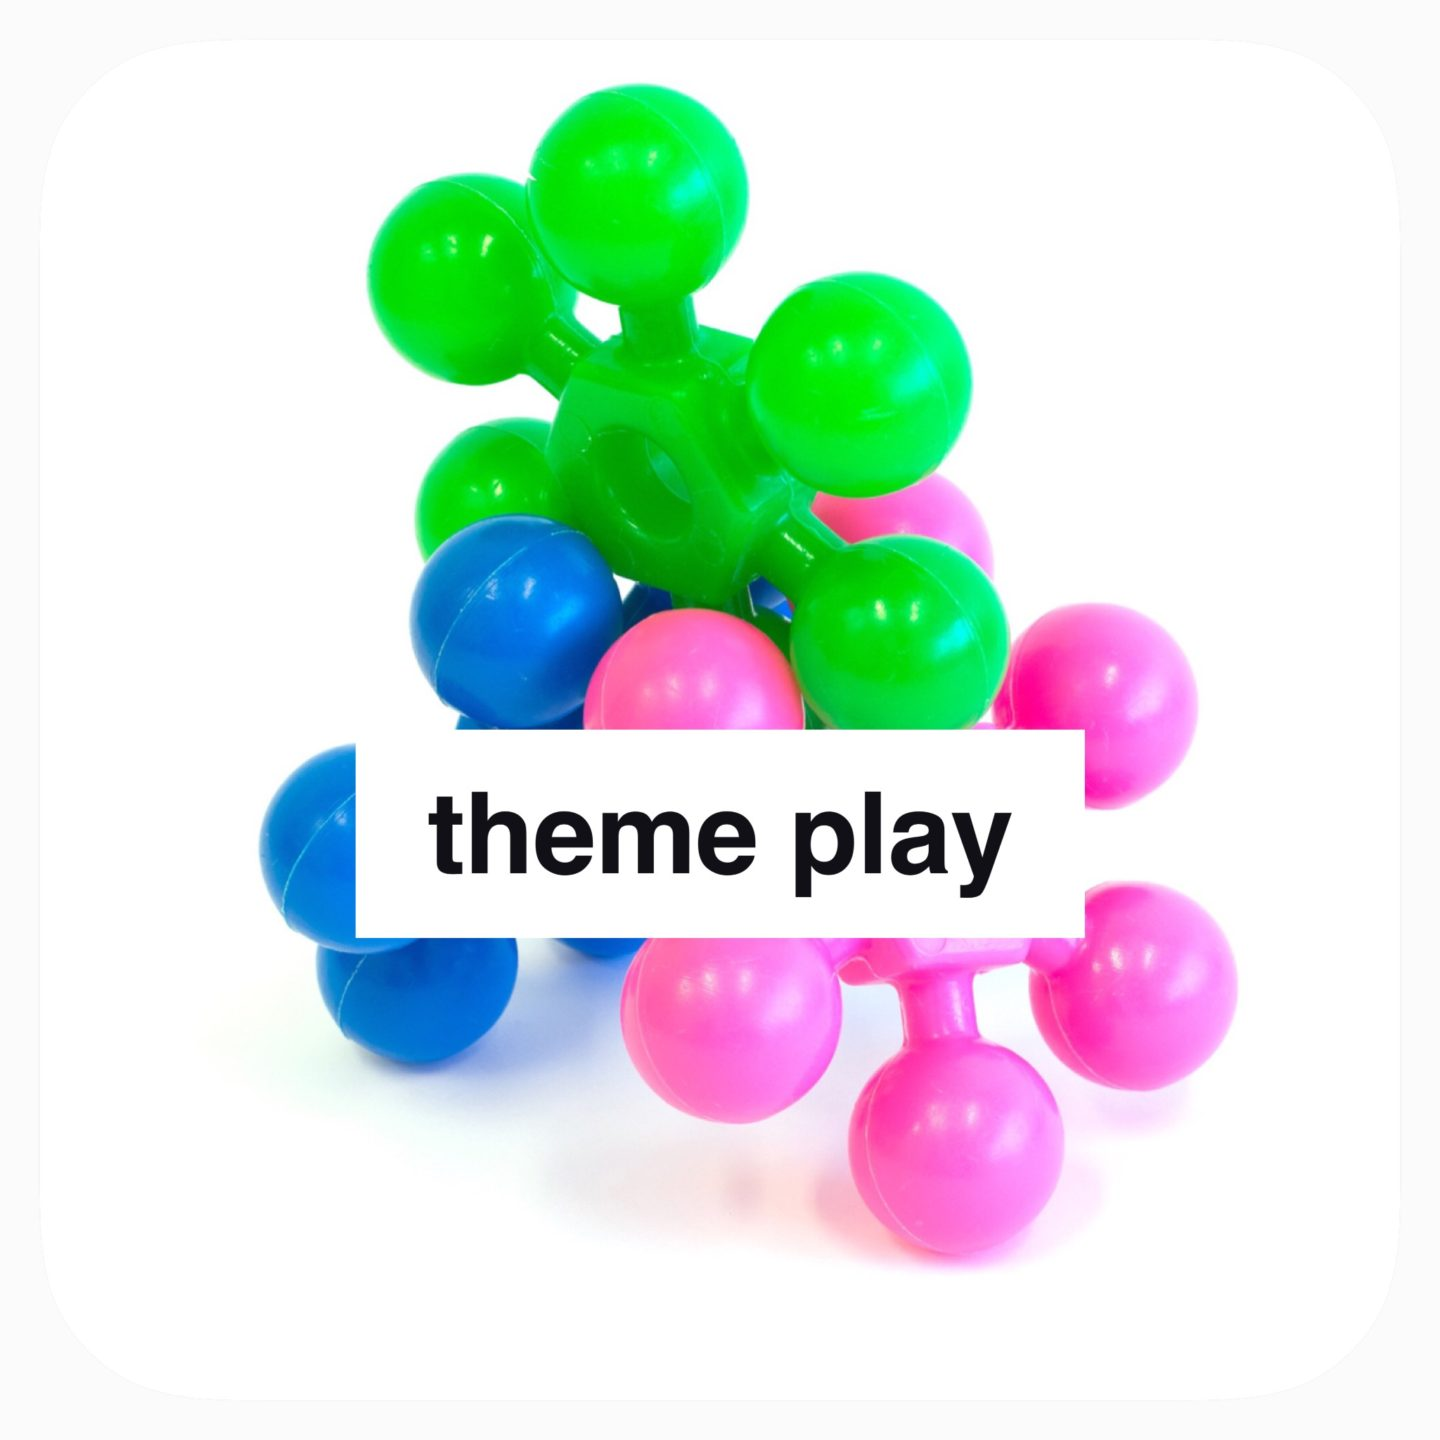 Theme play ideas from @how2playtoday